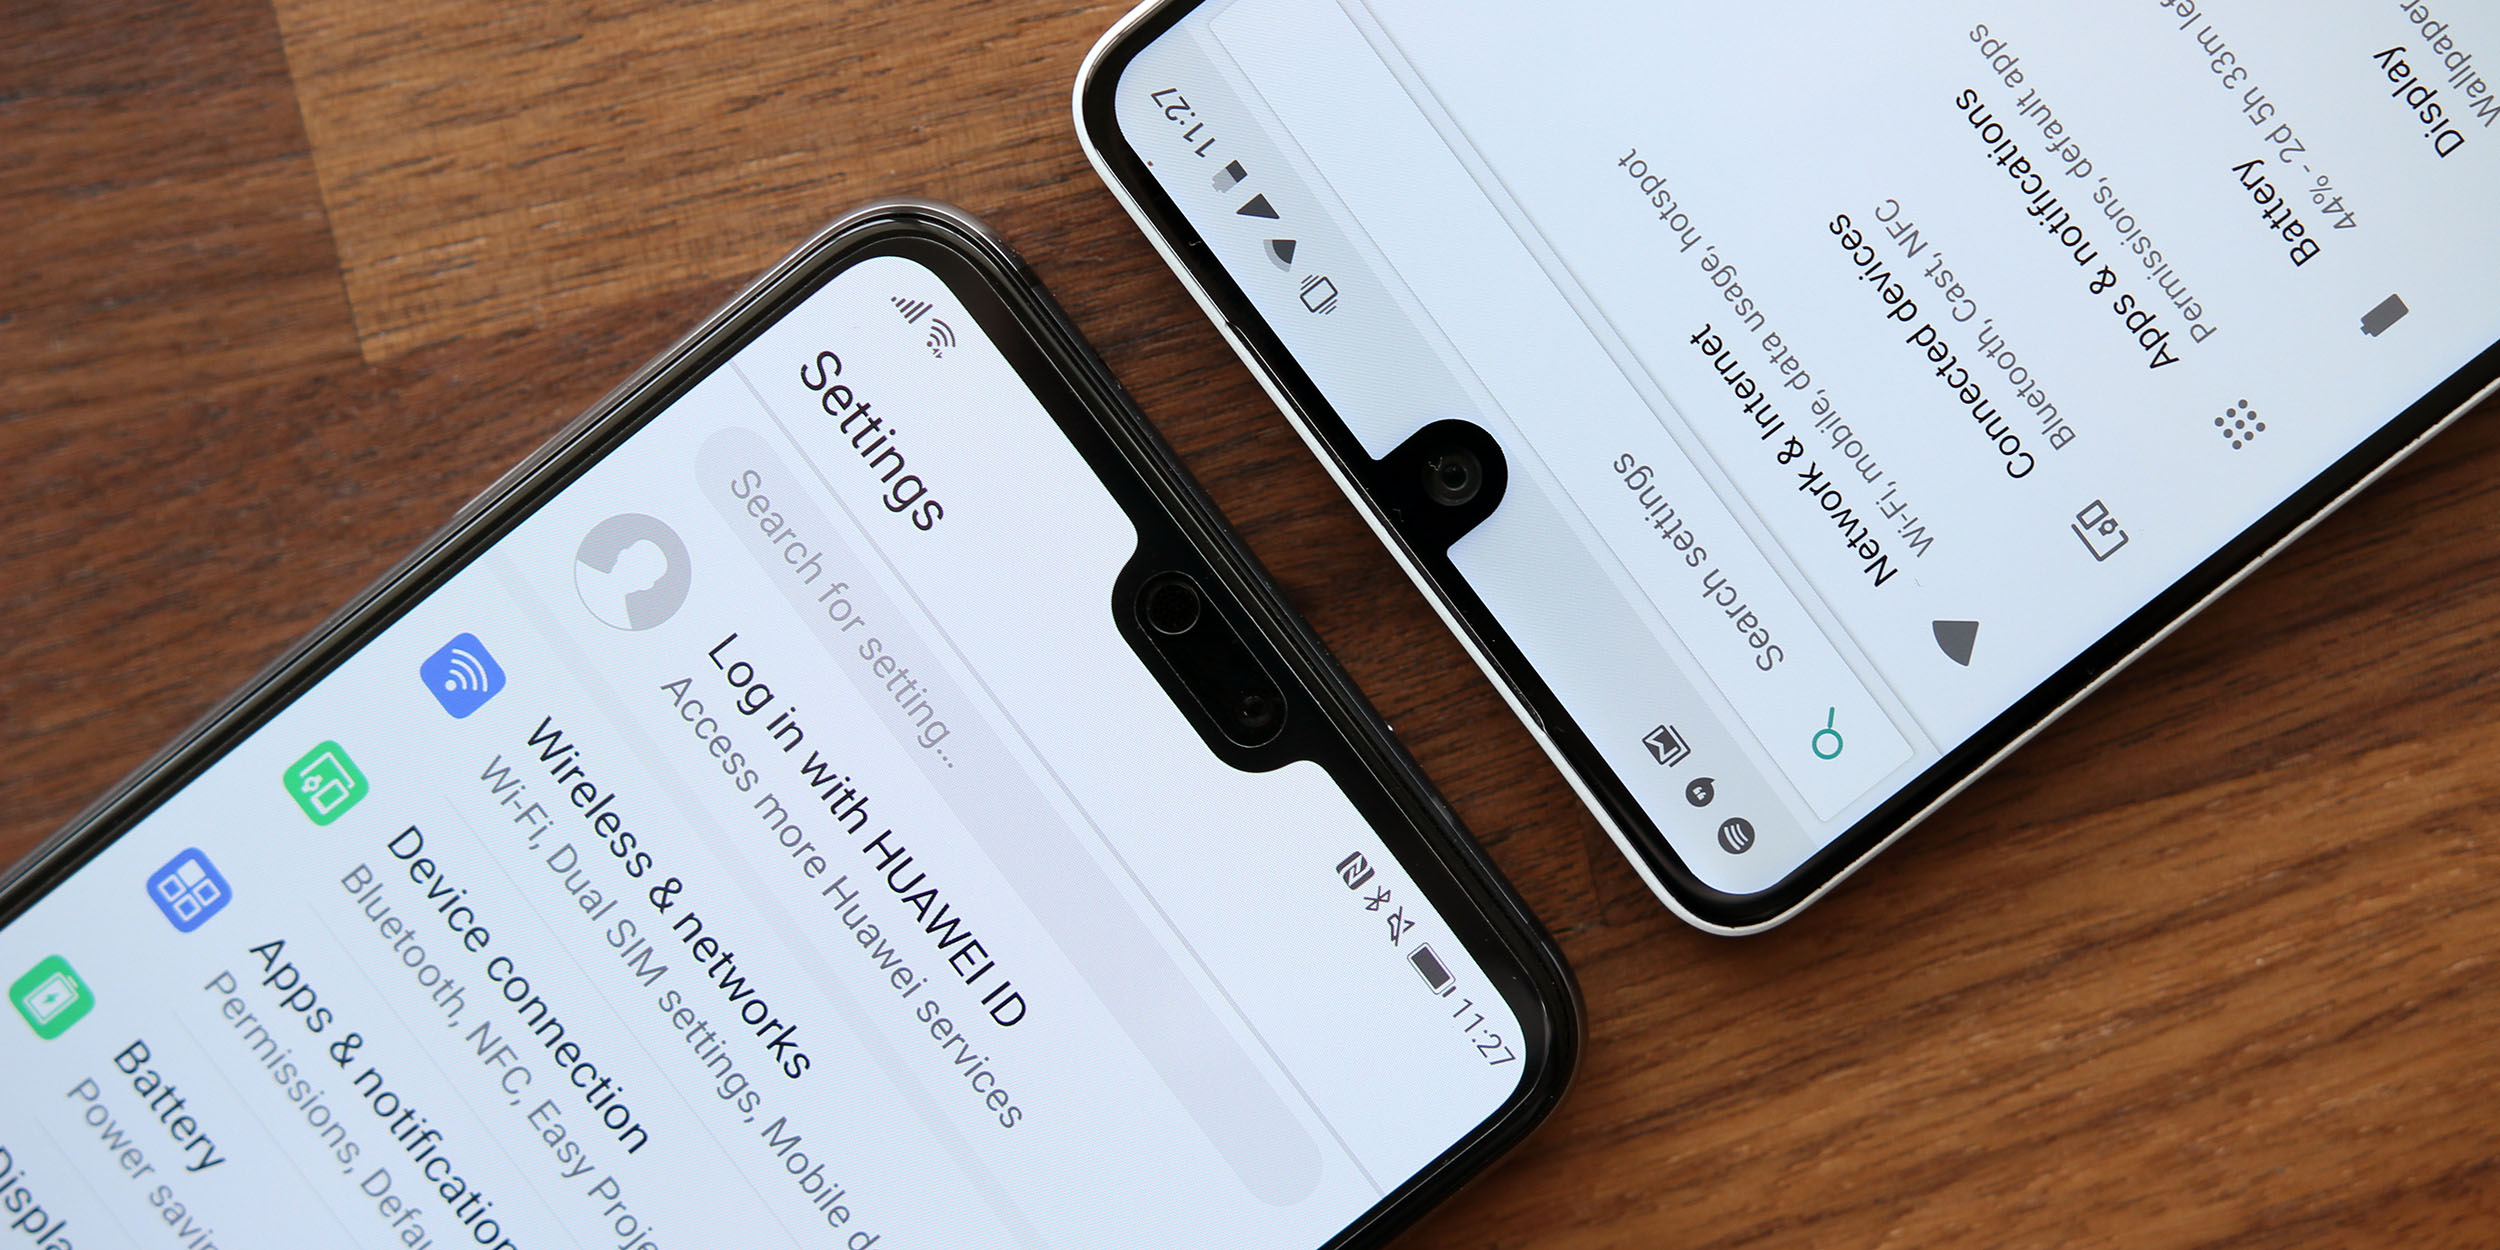 Opinion: I don't mind having a display notch, but it's